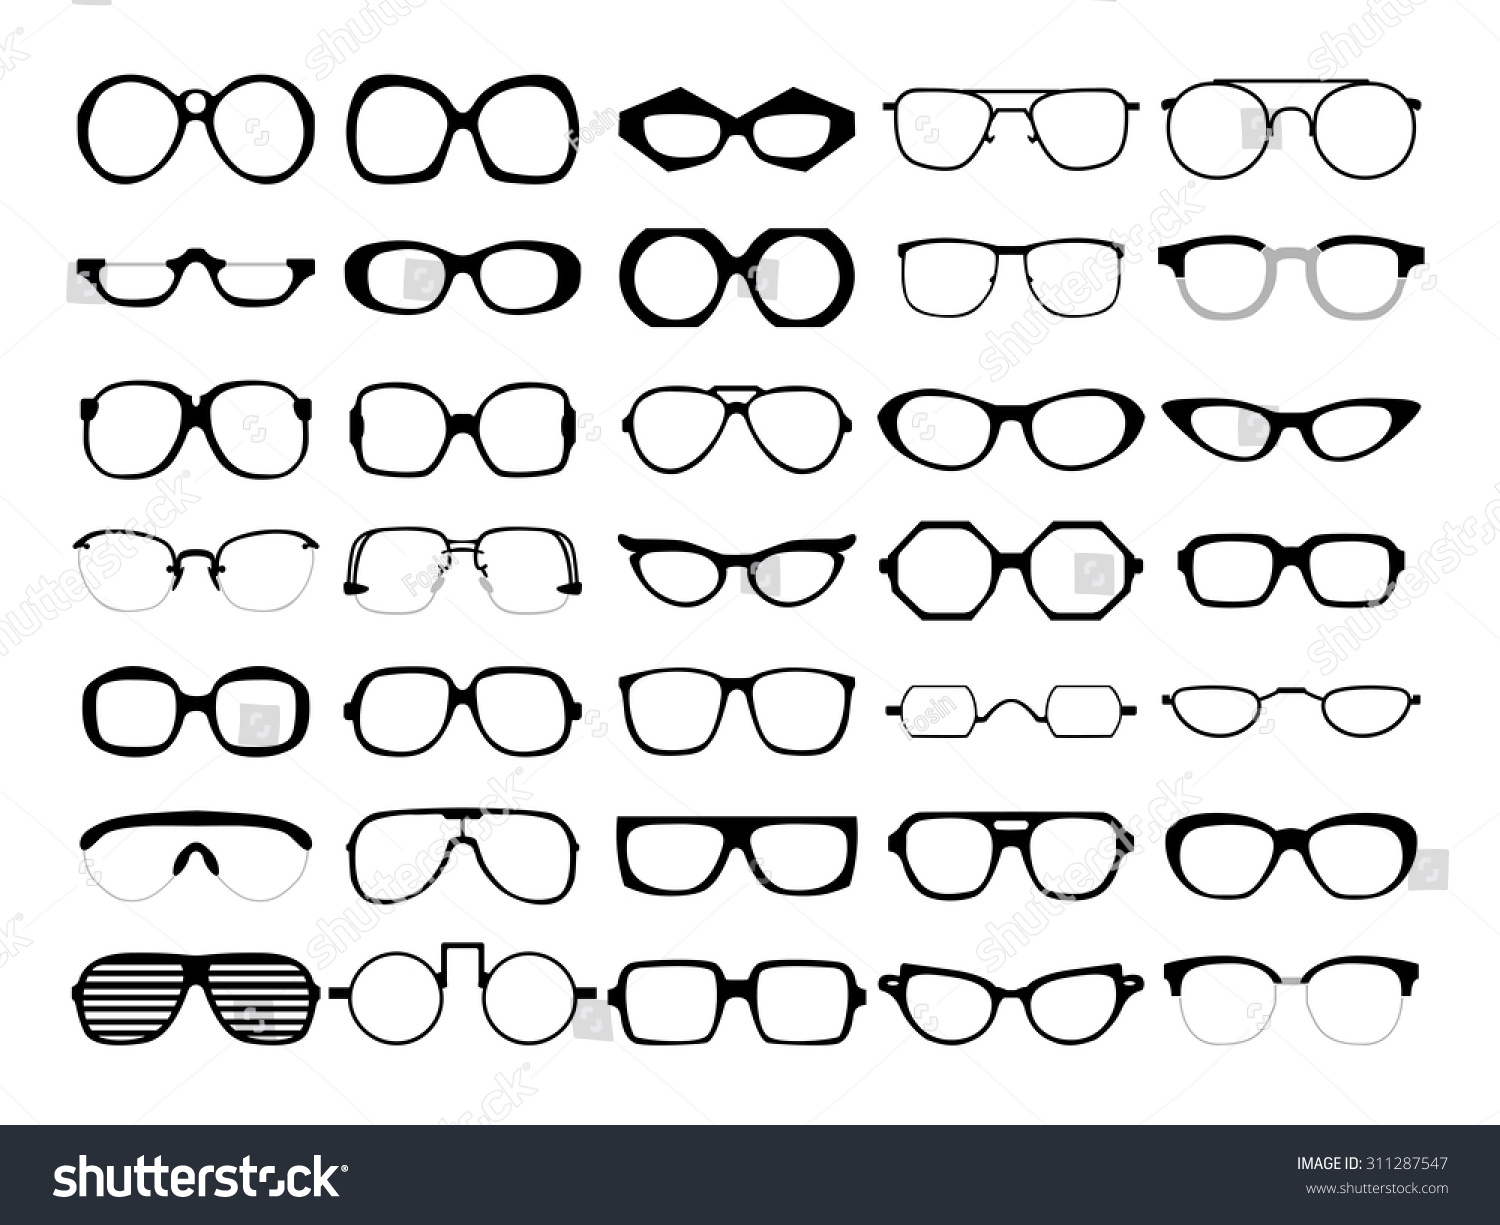 ... hipster frames. Man and women eyeglasses and sunglasses silhouettes